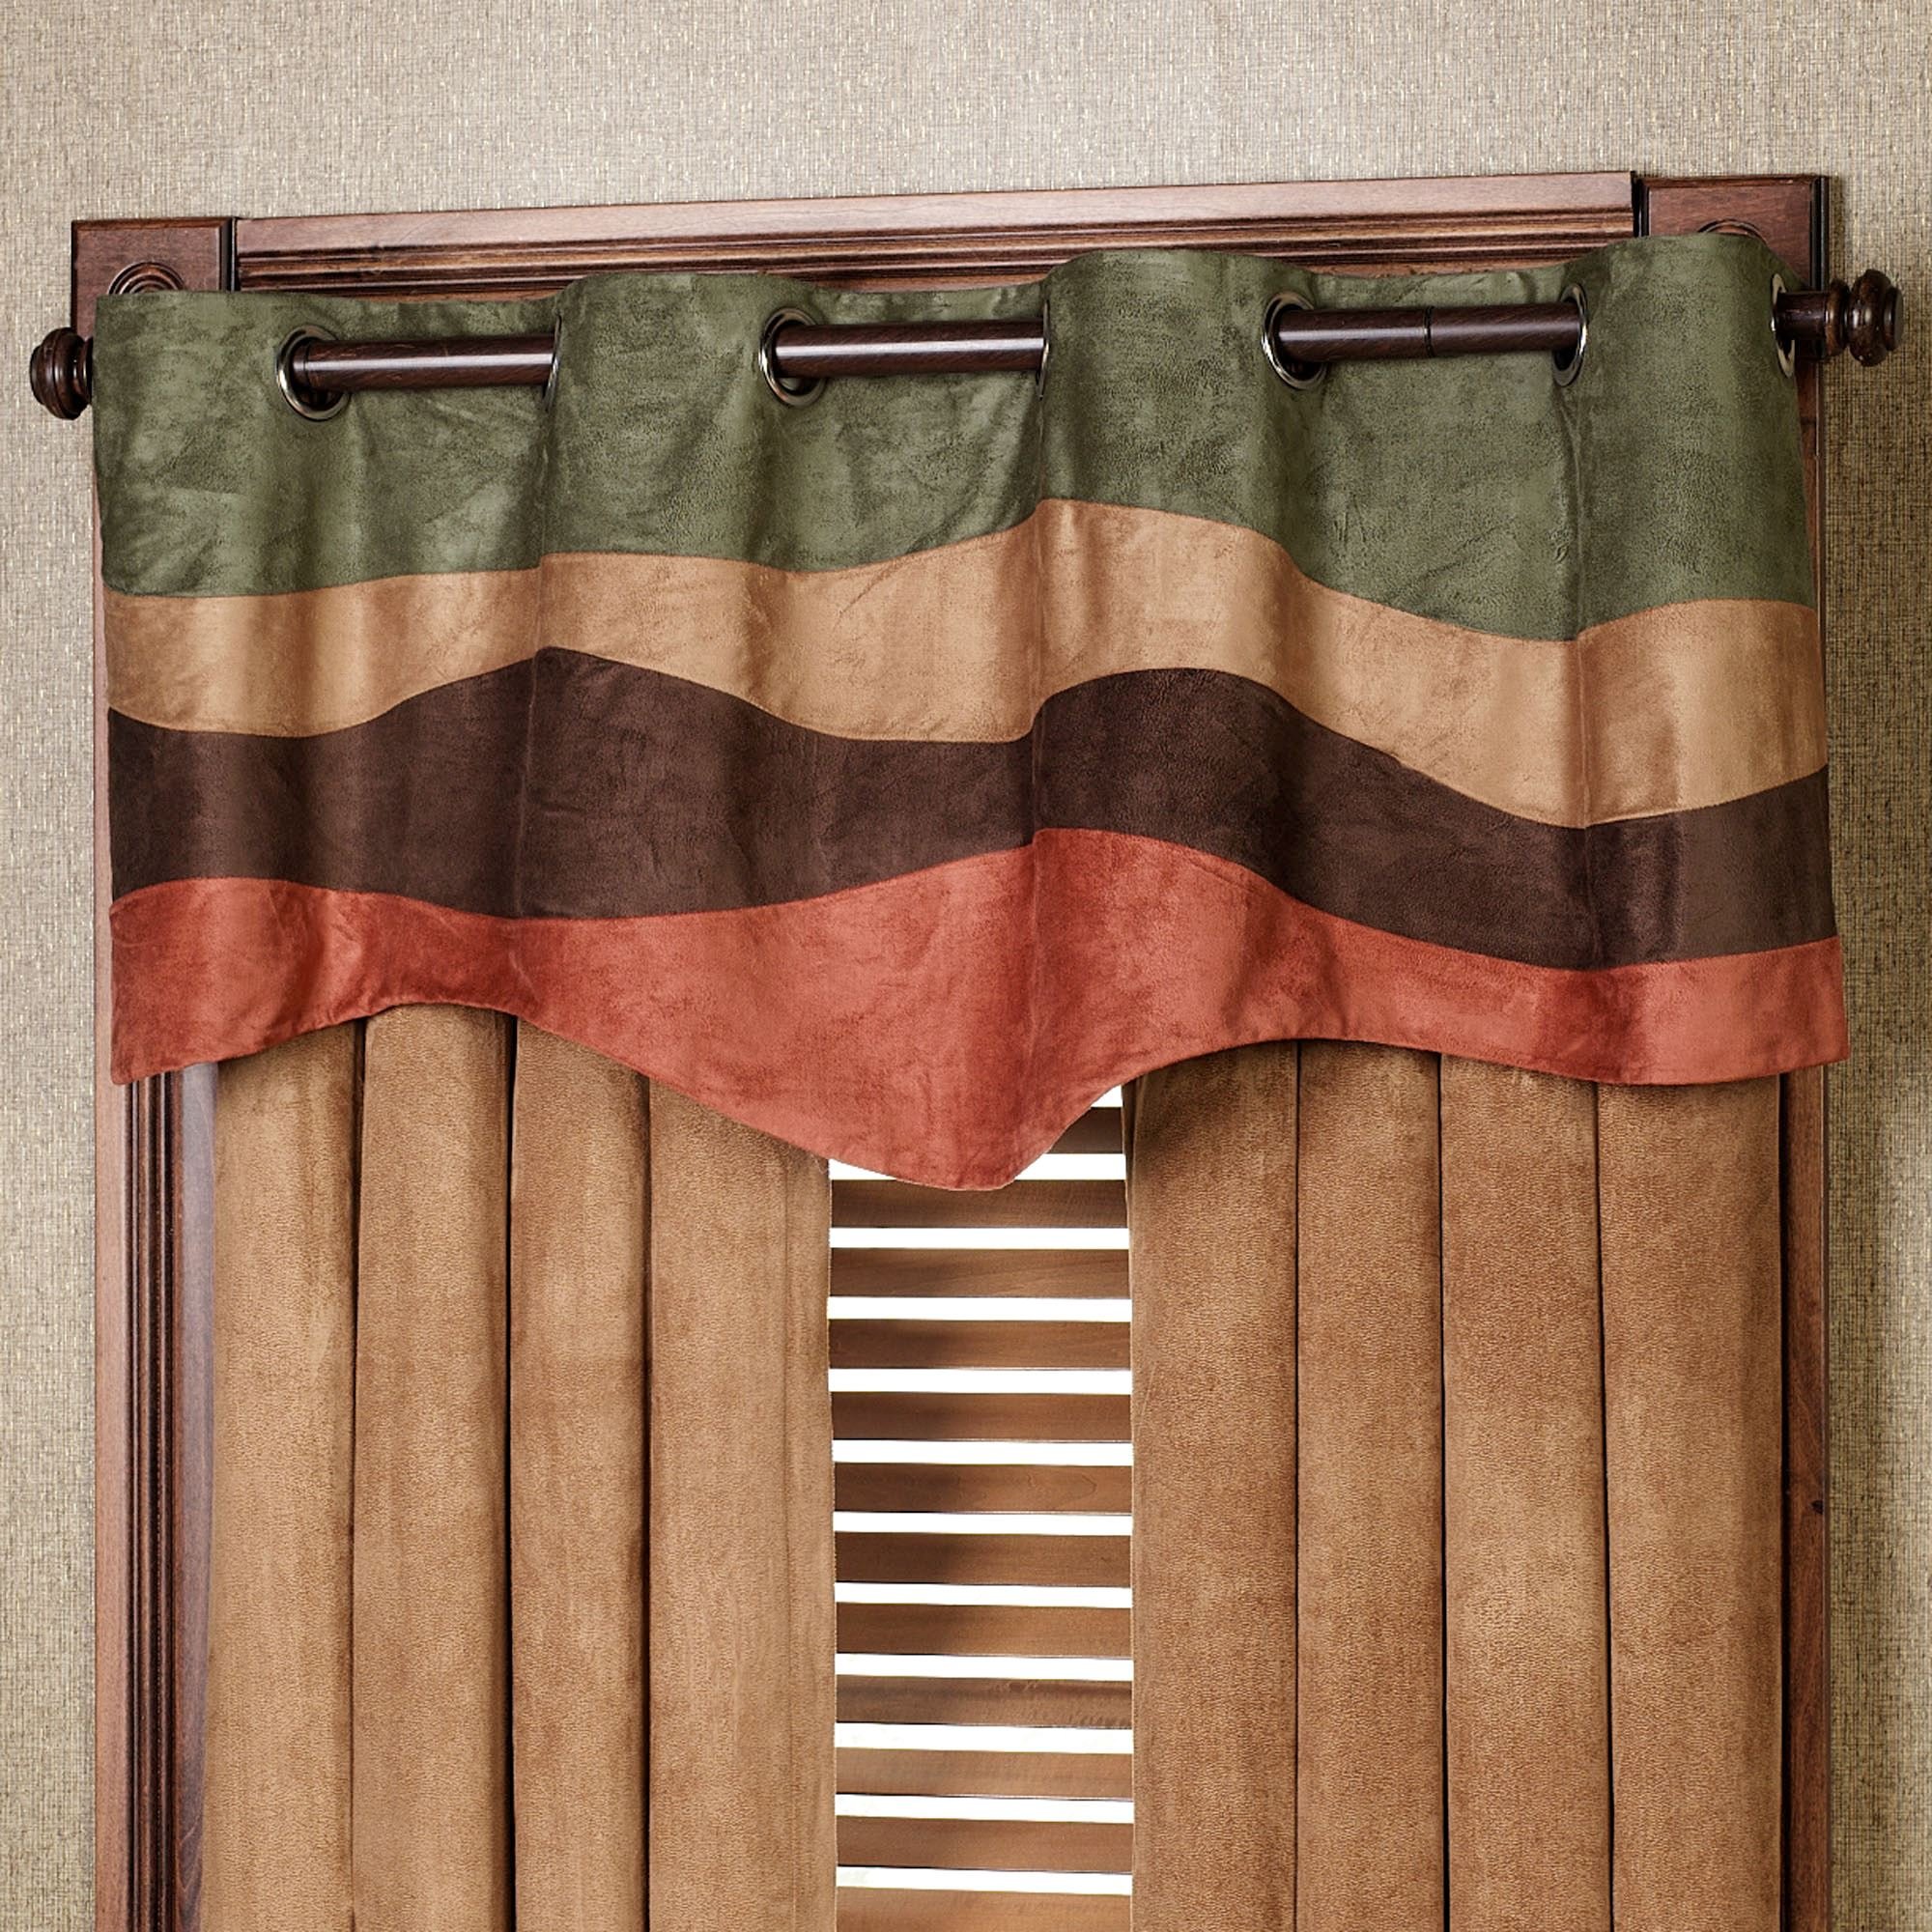 m fabulous inch panel marvelous endearing excellent basement curtains curtain cool phenomenal uncommon walmart valances cute size grommet valance darkening of amazing style tropical royal full entertain window linen insulated drapes